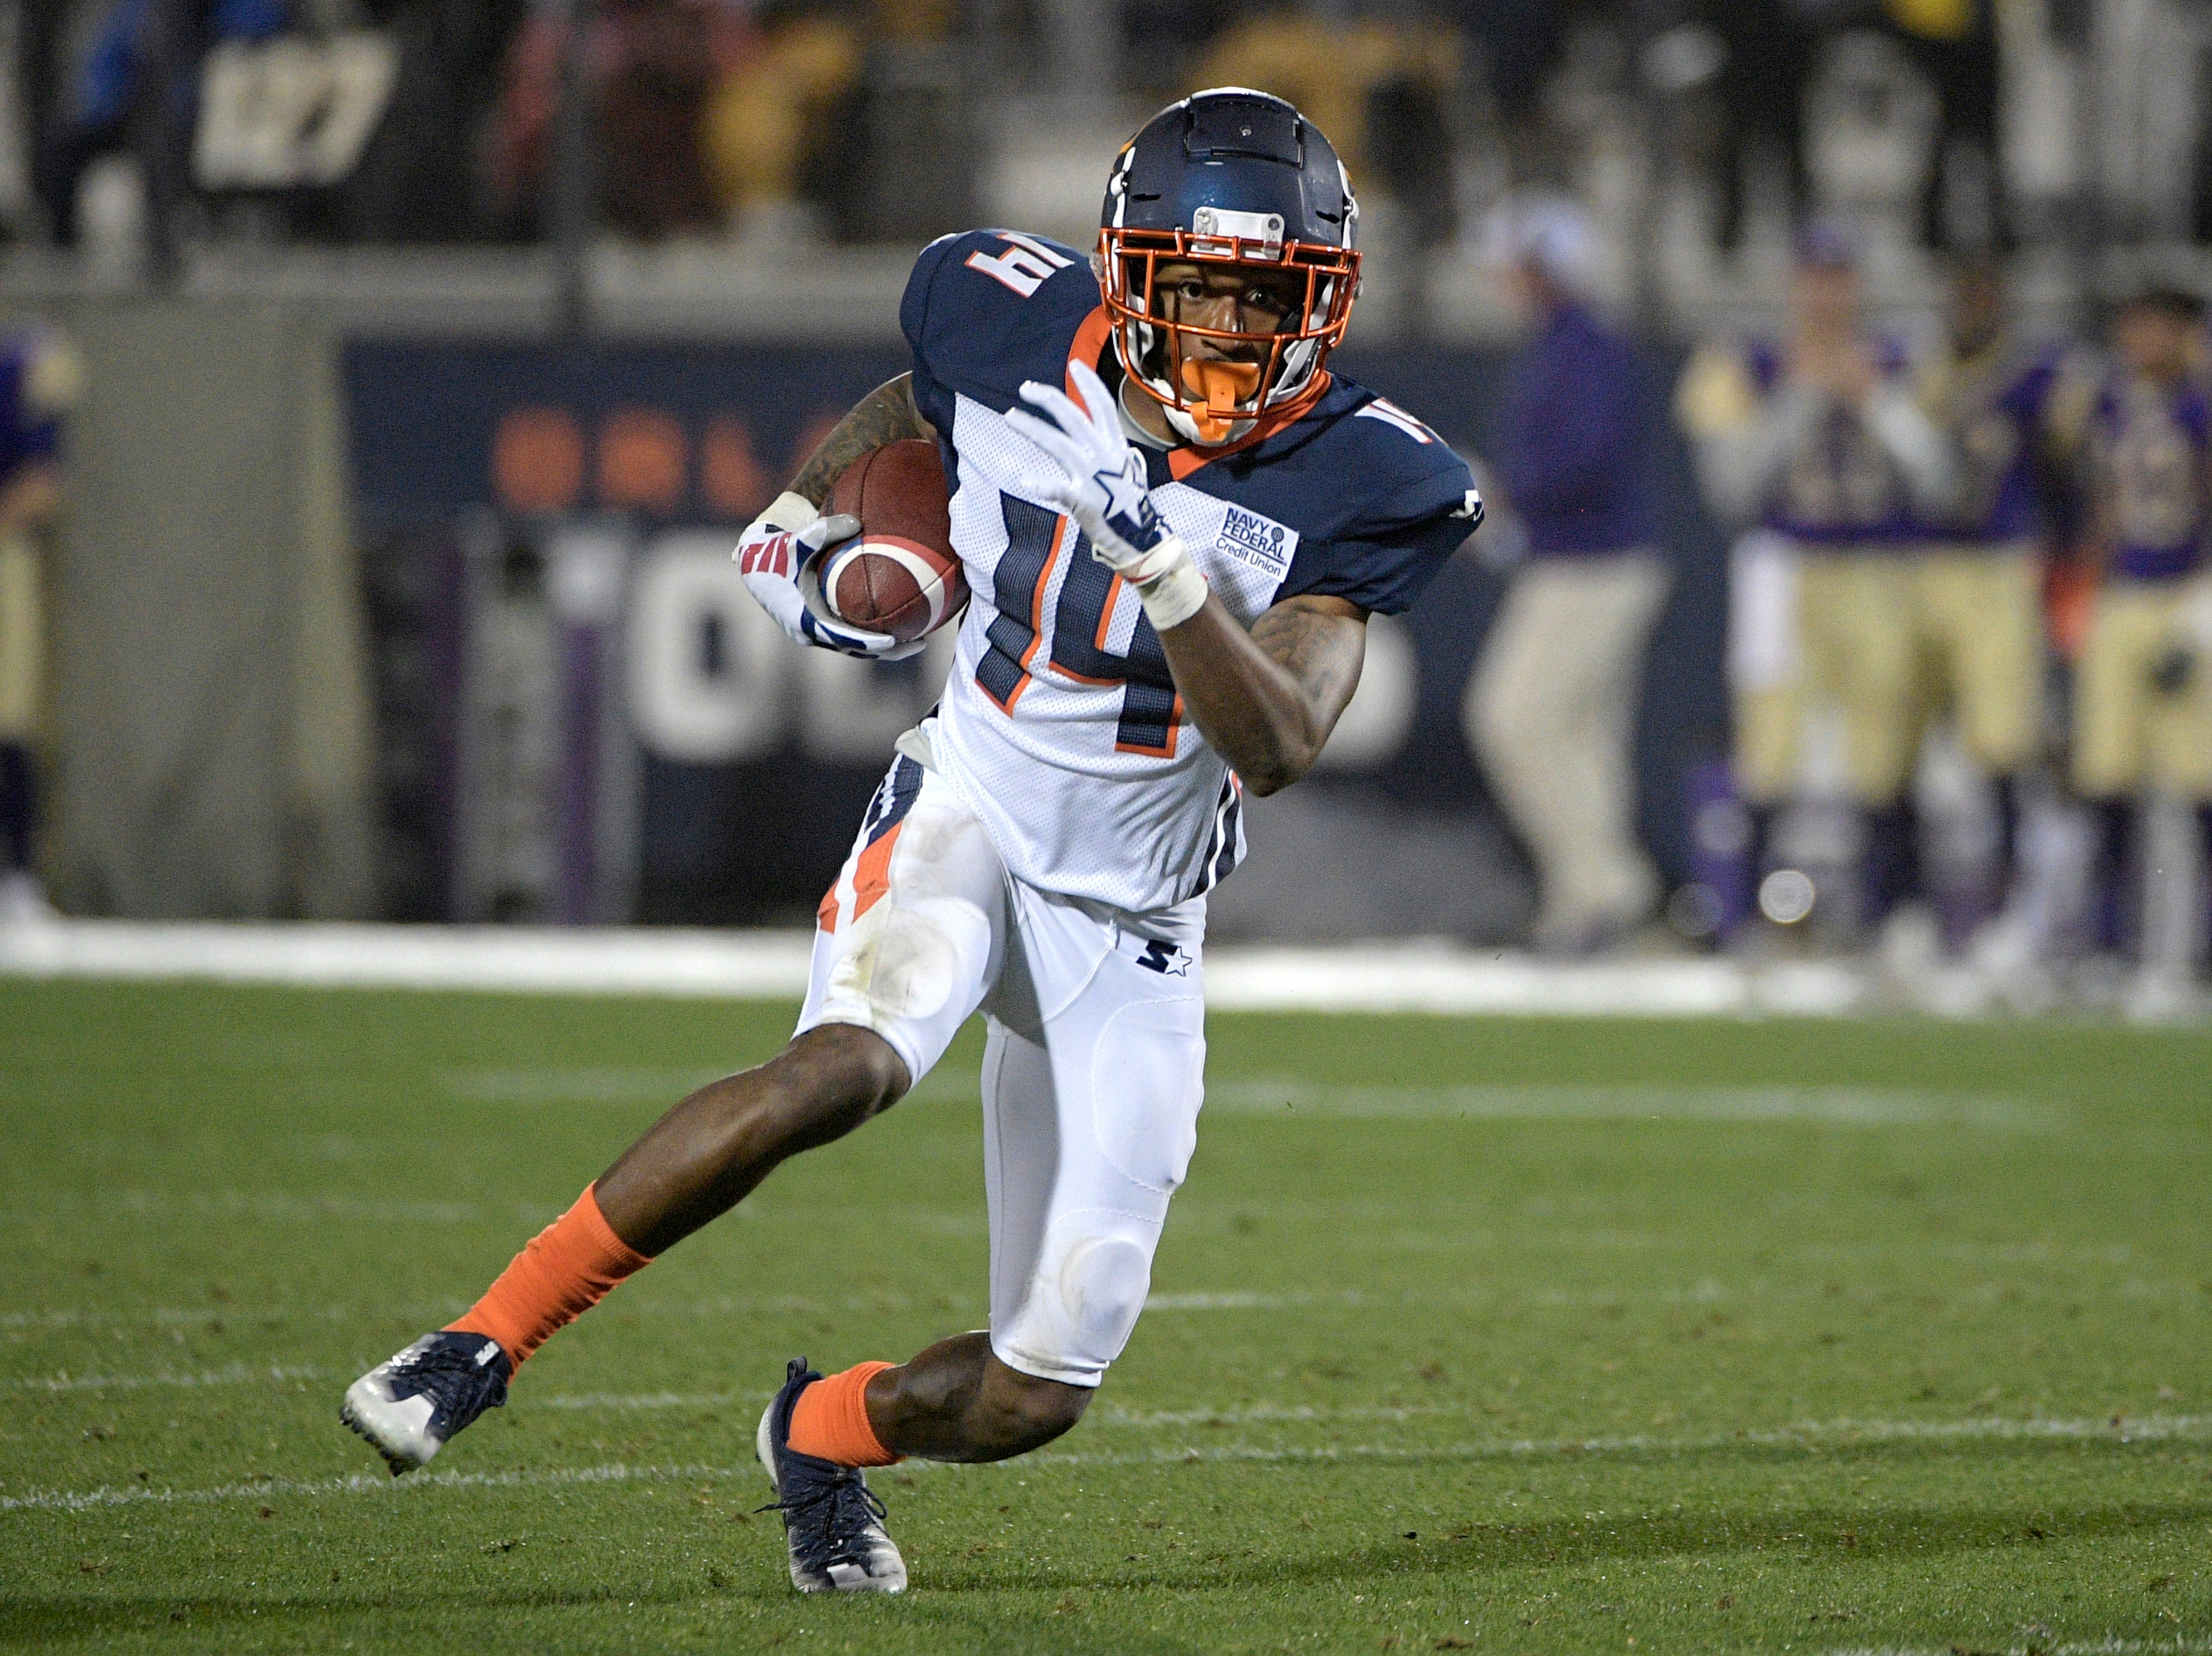 Orlando Apollos receiver Chris Thompson (14) runs after catching a pass during the first half of an Alliance of American Football game against the Atlanta Legends on Saturday, Feb. 9, 2019, in Orlando, Fla. (AP Photo/Phelan M. Ebenhack)